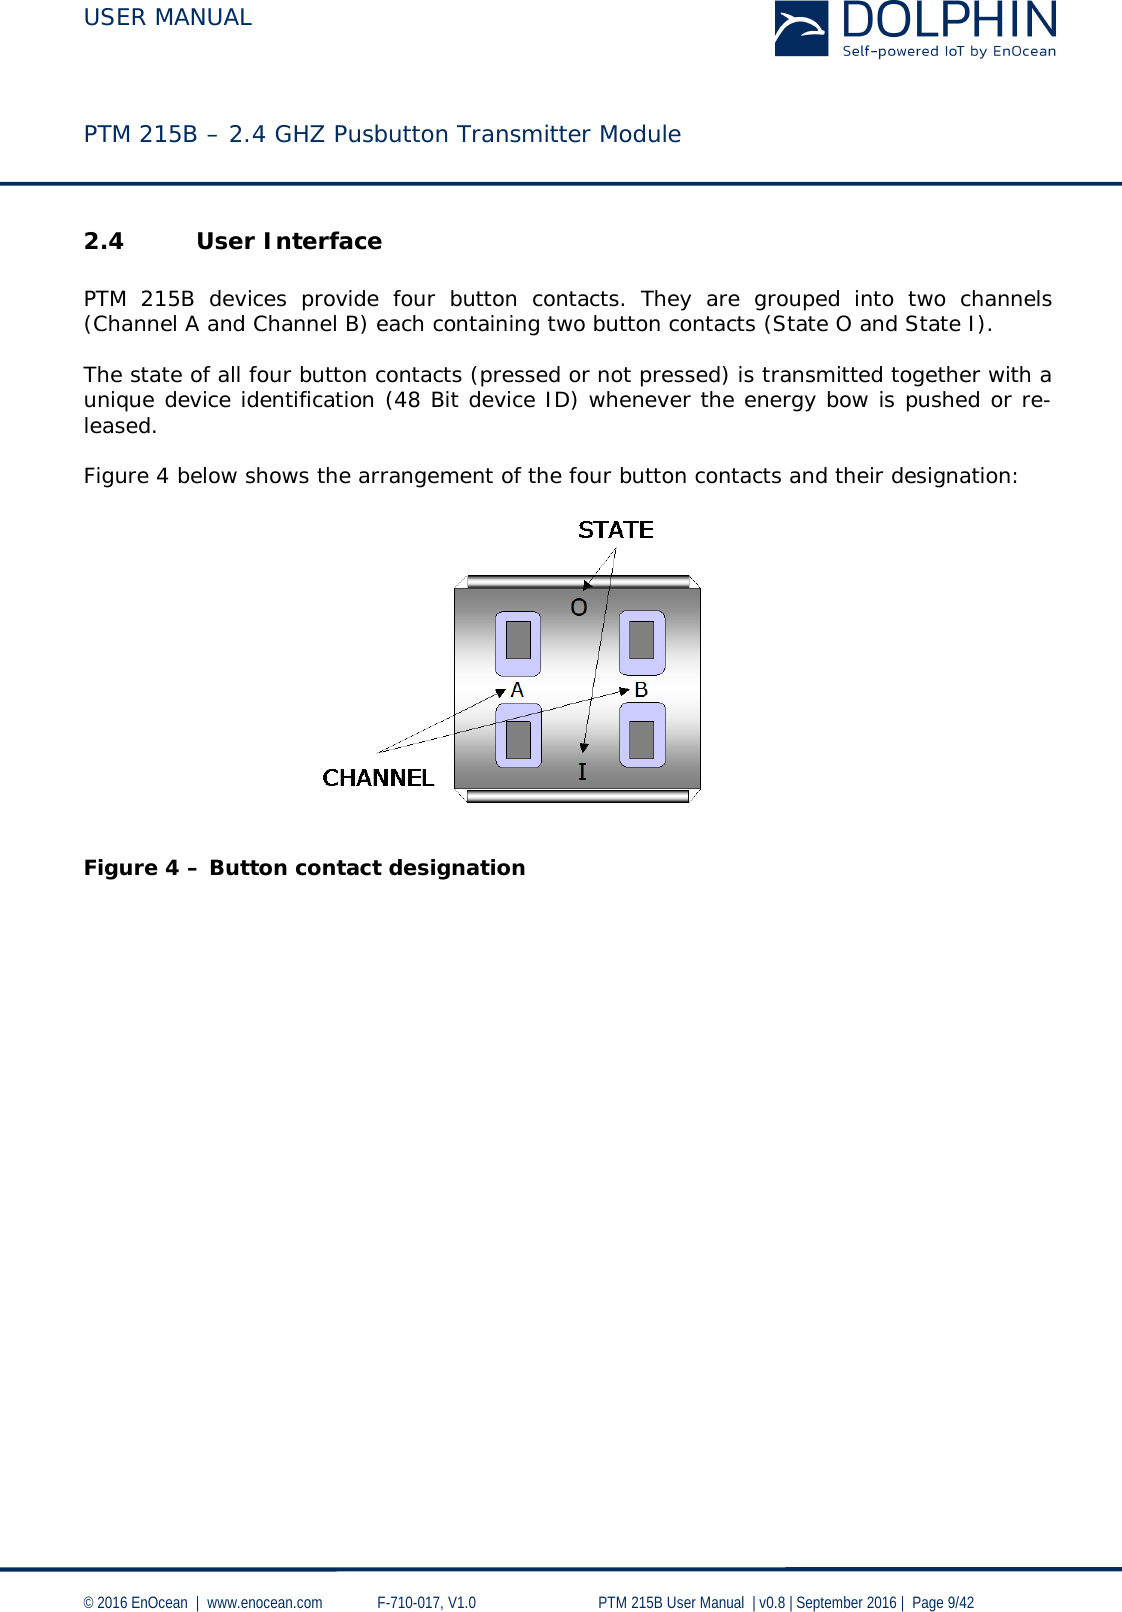 USER MANUAL    PTM 215B – 2.4 GHZ Pusbutton Transmitter Module  © 2016 EnOcean     www.enocean.com   F-710-017, V1.0        PTM 215B User Manual    v0.8   September 2016    Page 9/42  2.4 User Interface  PTM 215B devices provide four button  contacts. They are grouped into two channels (Channel A and Channel B) each containing two button contacts (State O and State I).   The state of all four button contacts (pressed or not pressed) is transmitted together with a unique device identification (48 Bit device ID) whenever the energy bow is pushed or re-leased.   Figure 4 below shows the arrangement of the four button contacts and their designation:   Figure 4 – Button contact designation